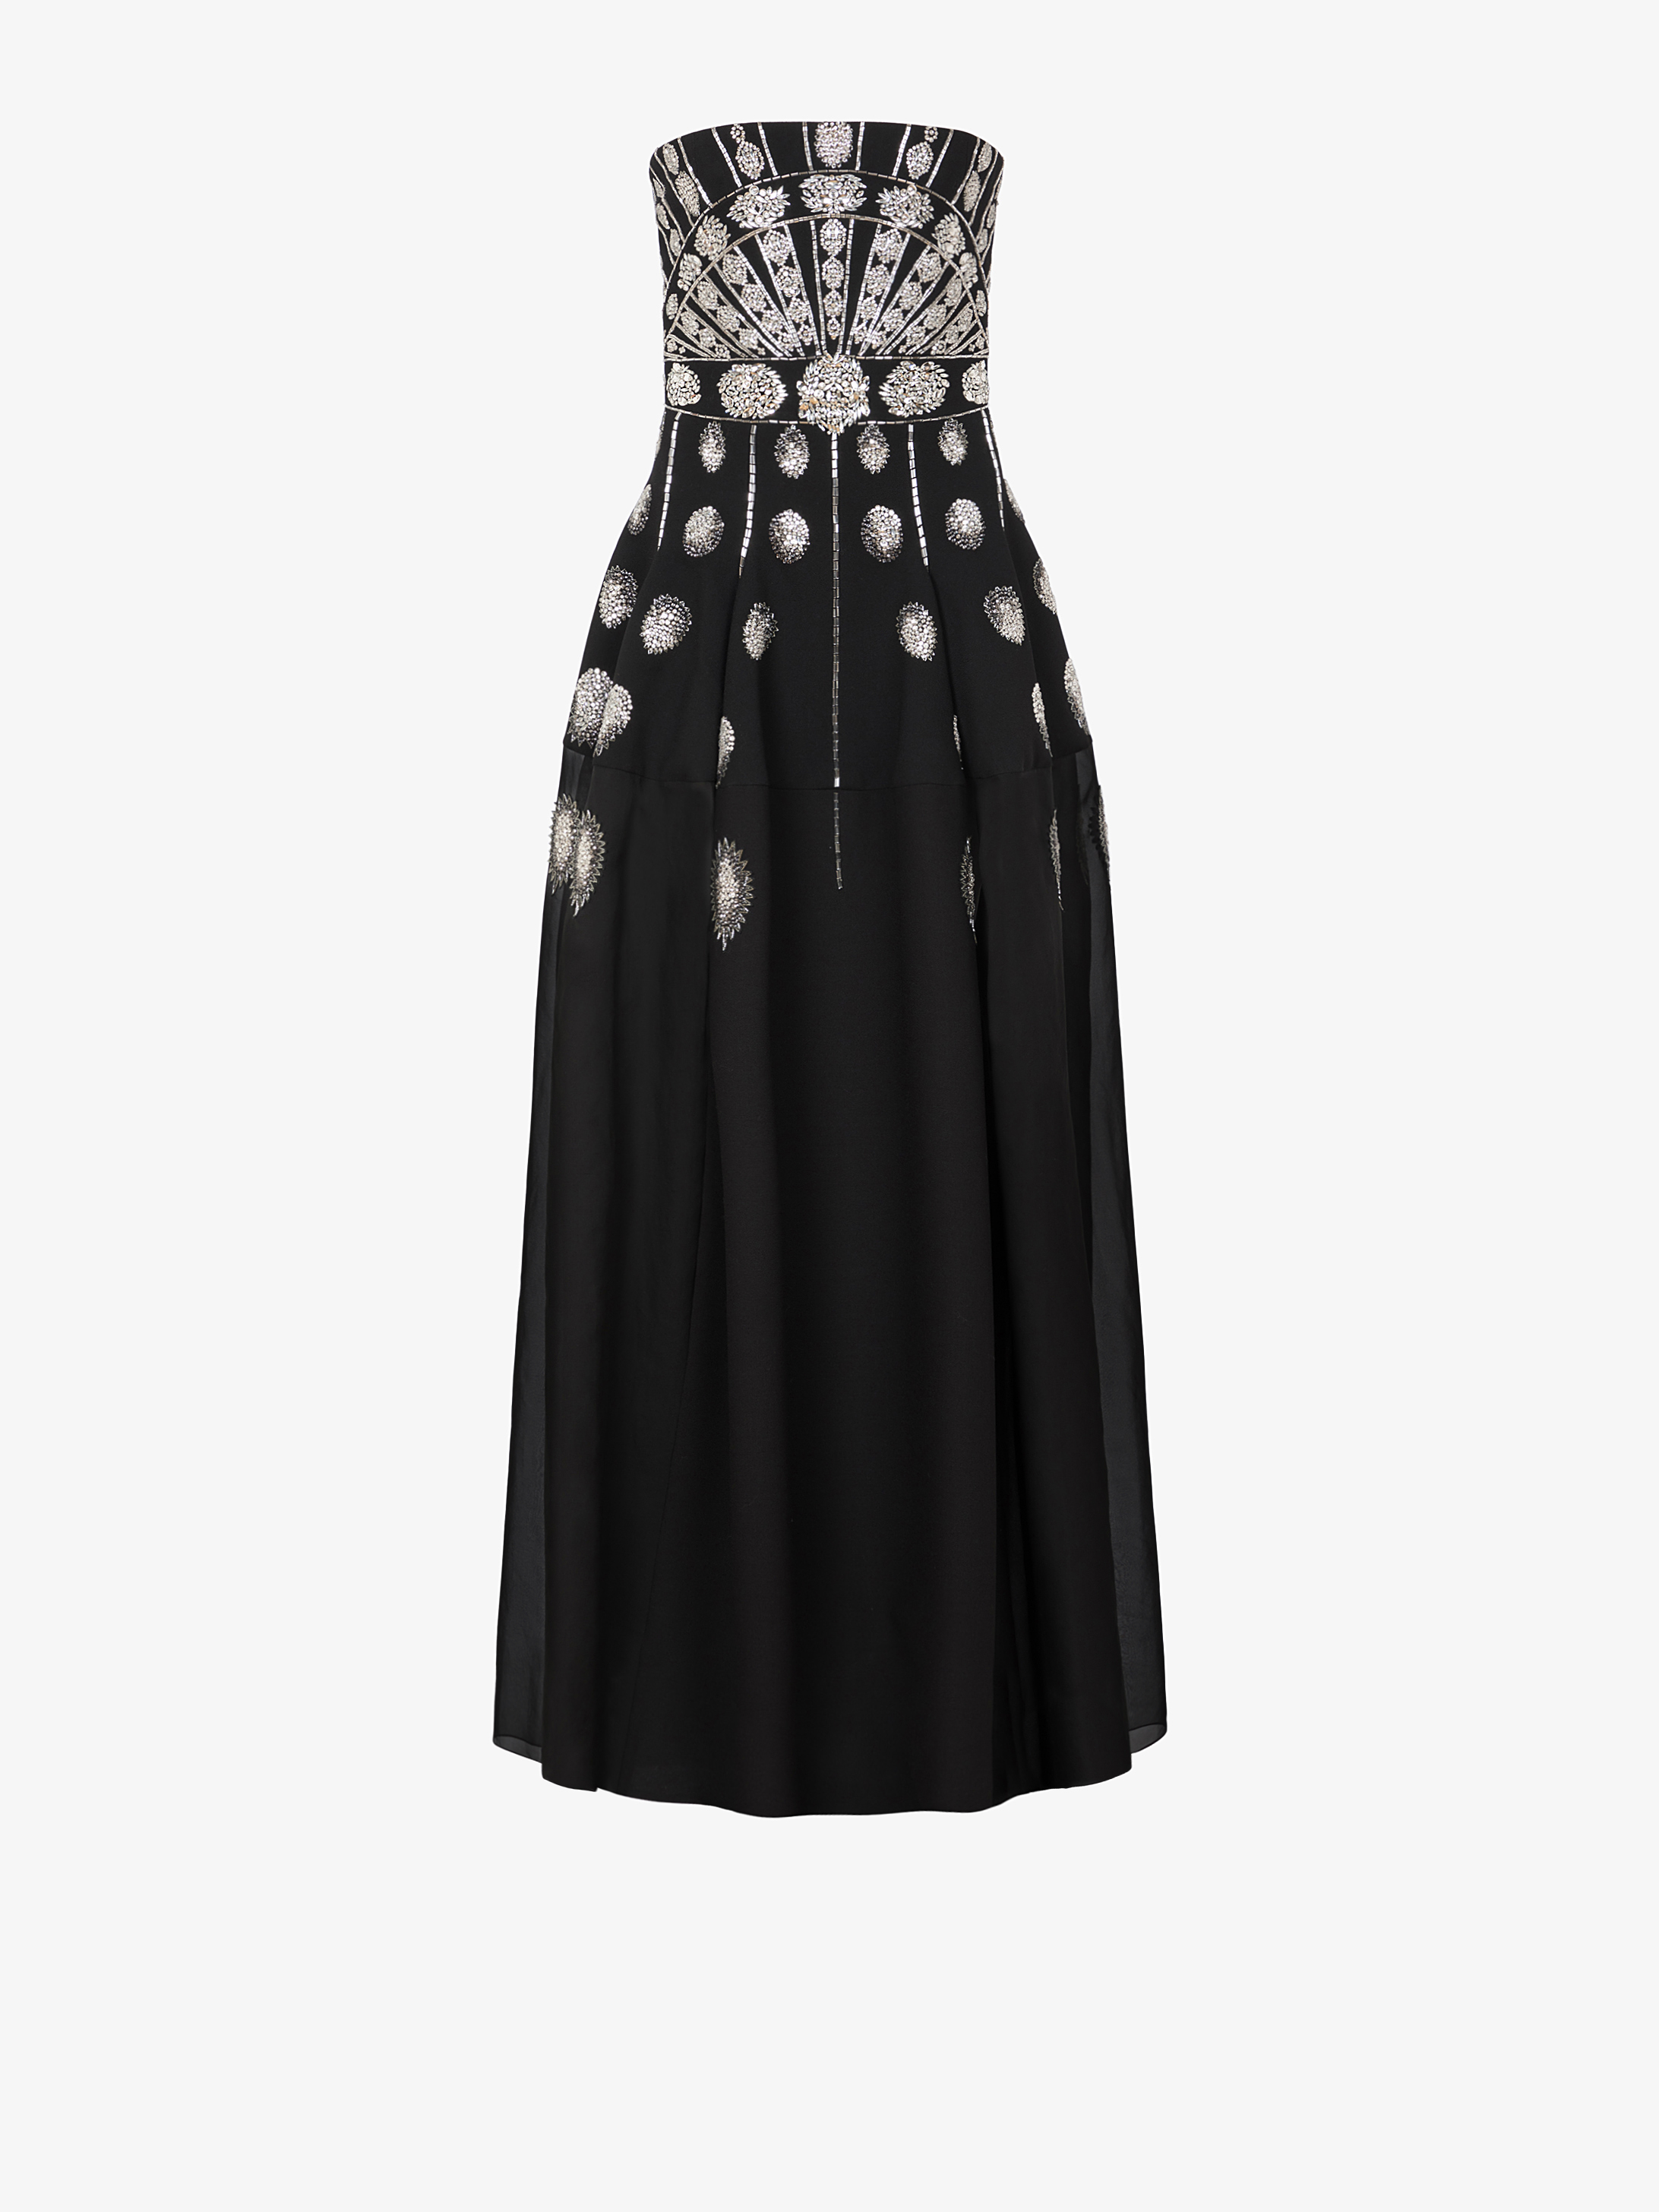 Crystal embroidered evening bustier dress